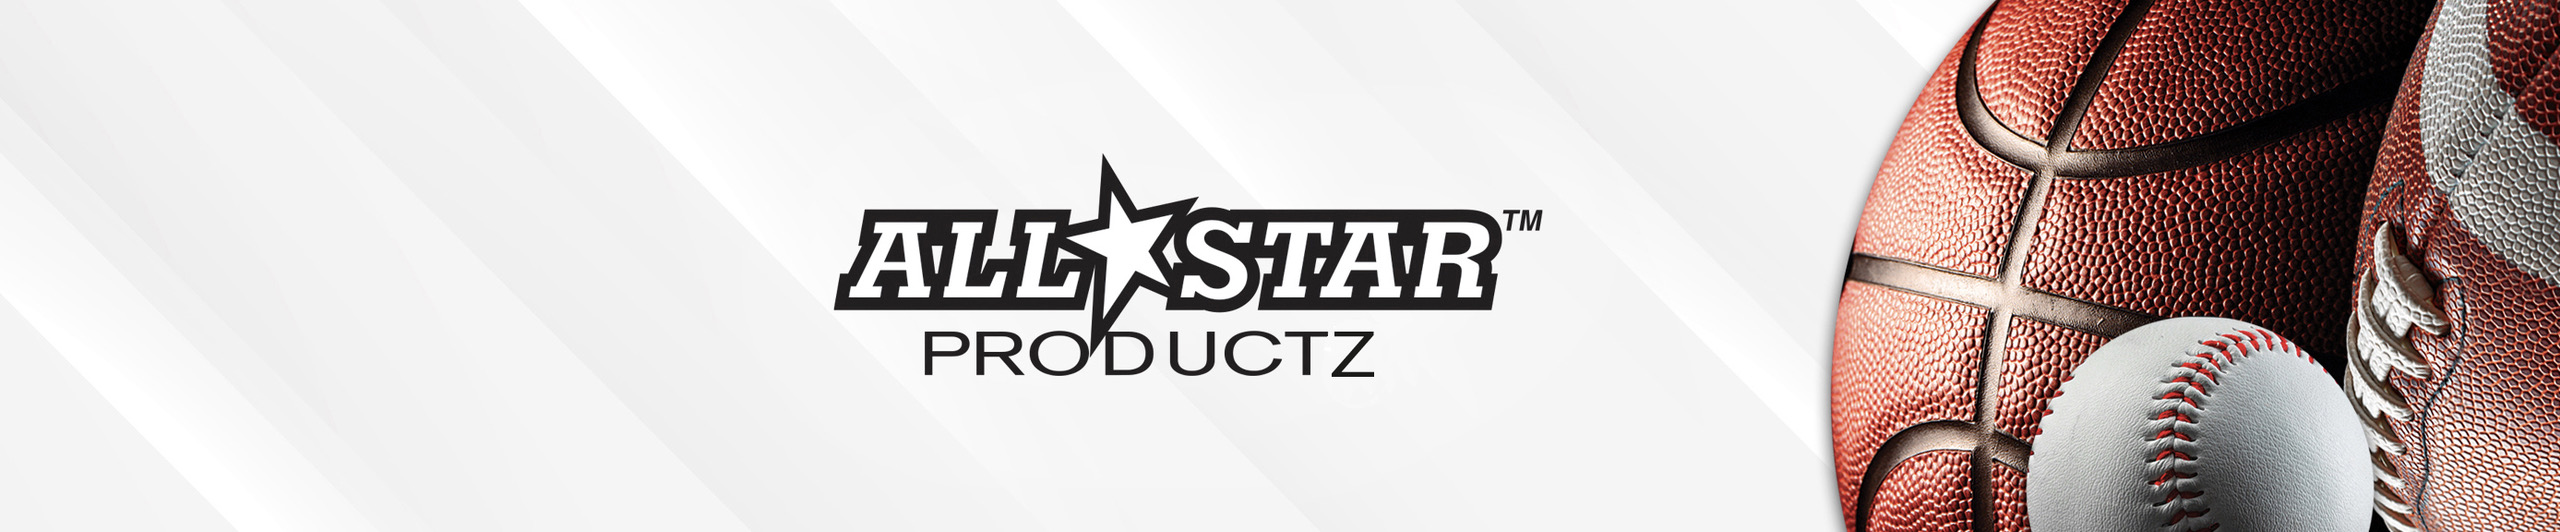 All Star Productz